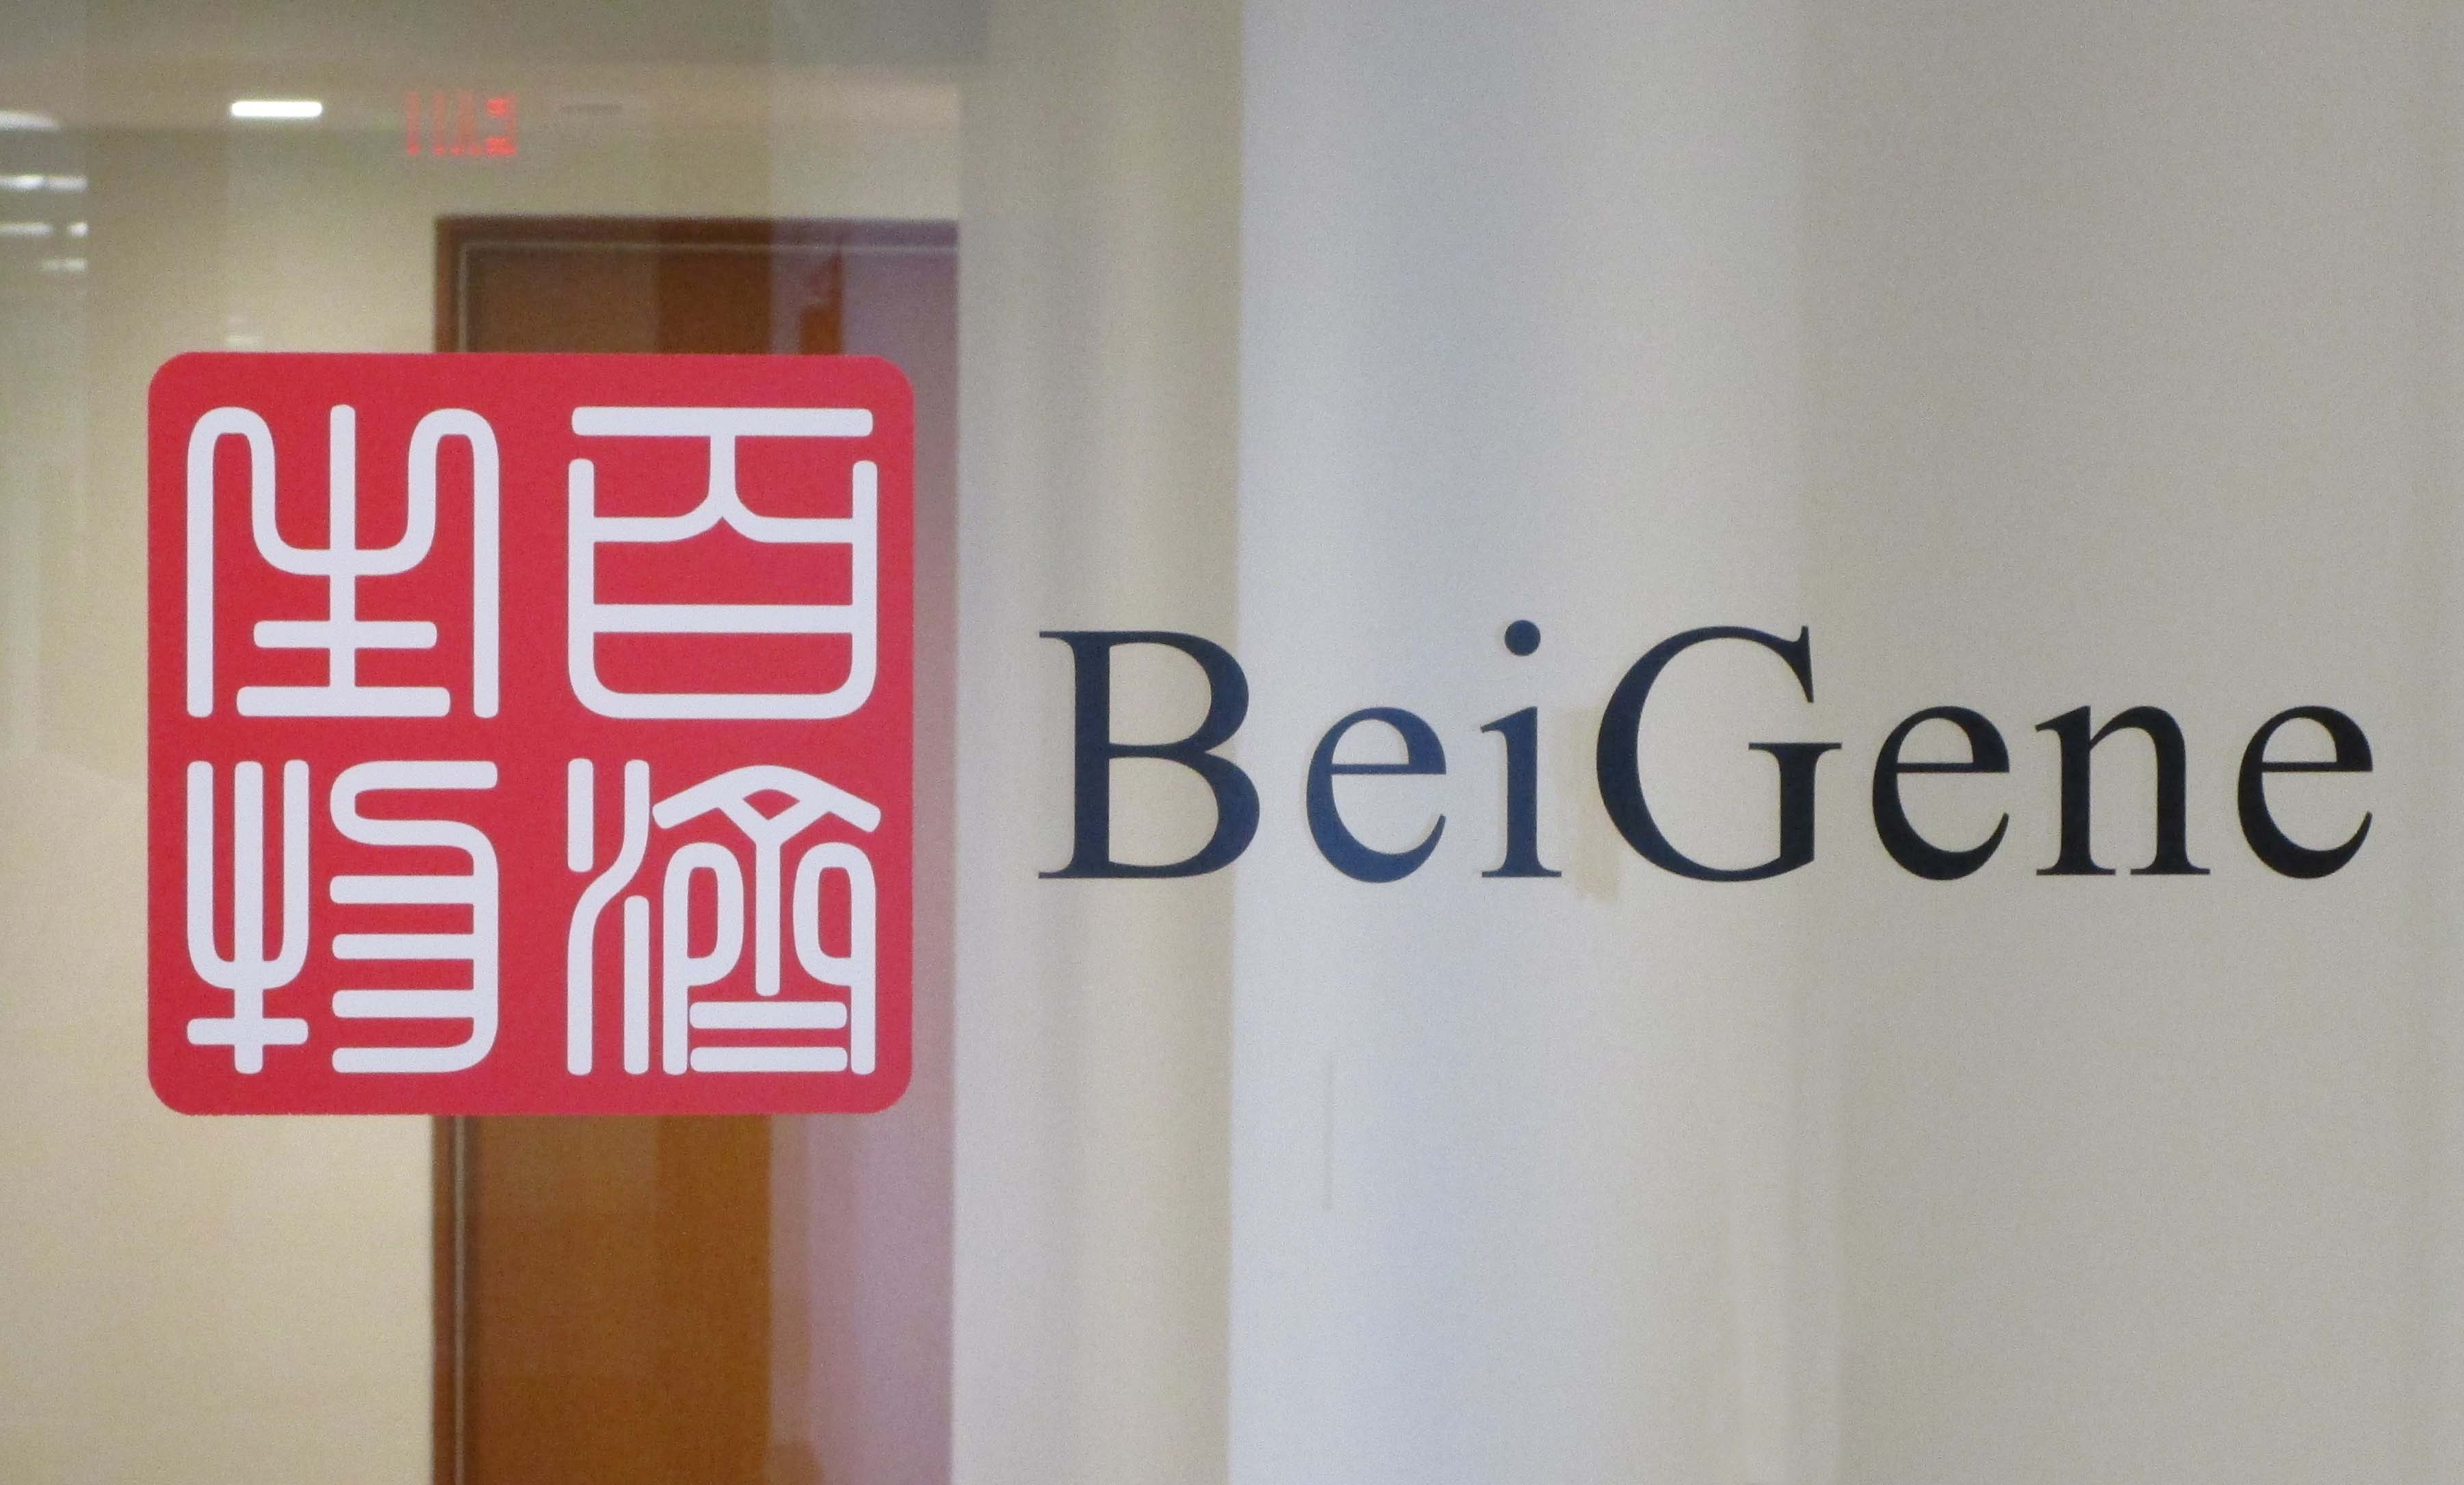 BeiGene's Revenue Exceeds Expectations, Stock Inches Up